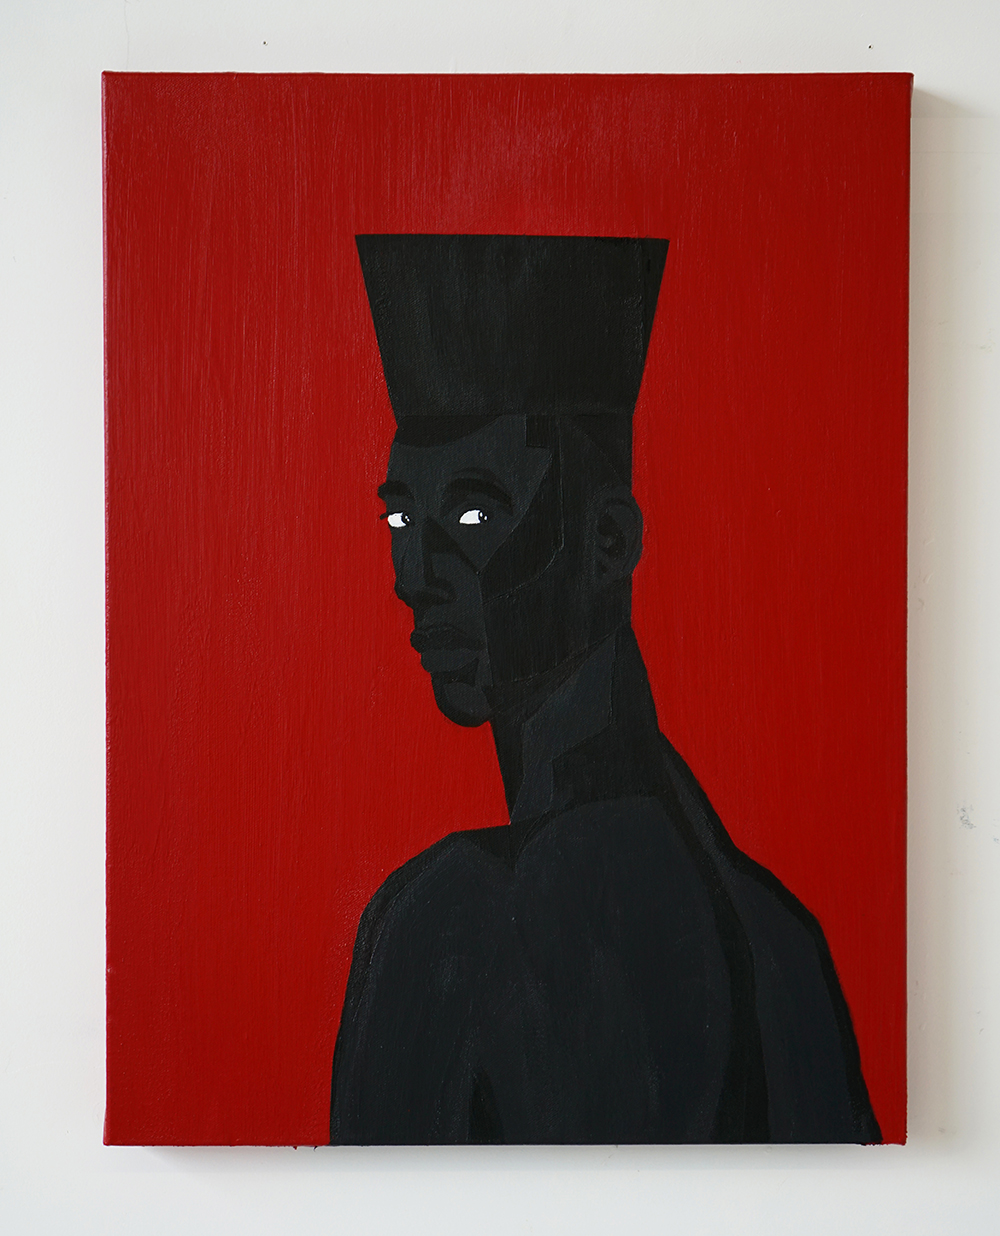 Jon Key.<em> The Man No. 3</em>, 2019. Acrylic on canvas, 24 x 18 inches (61 x 45.7 cm)